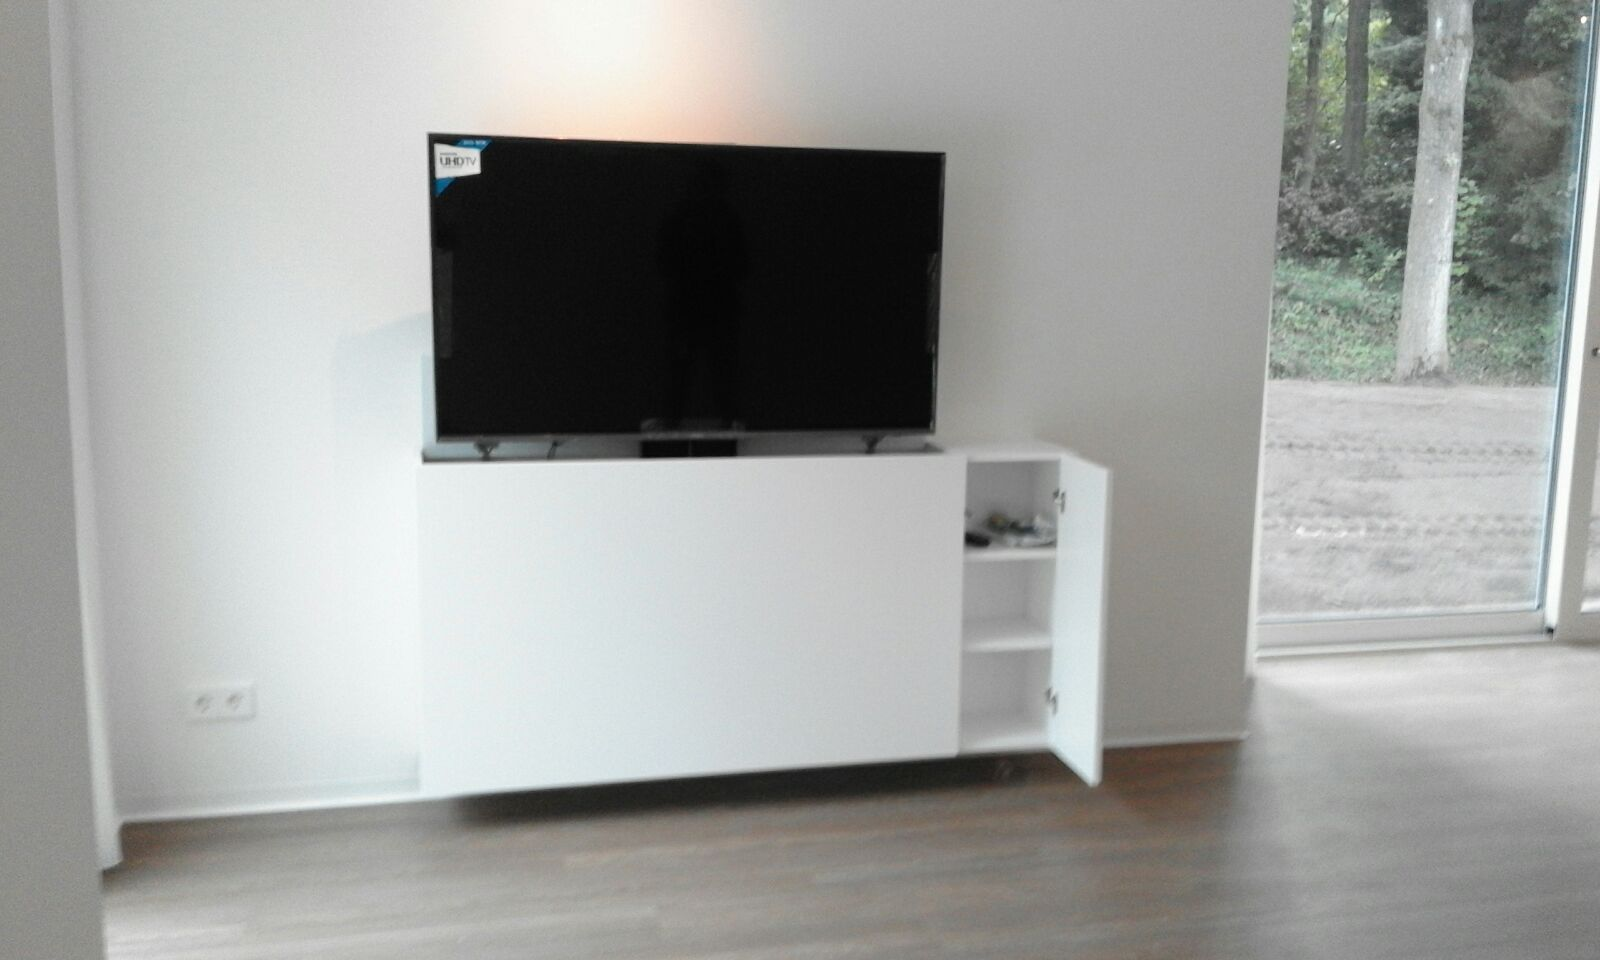 Tv Kast met lift Strak Zwevend - Luuks Design